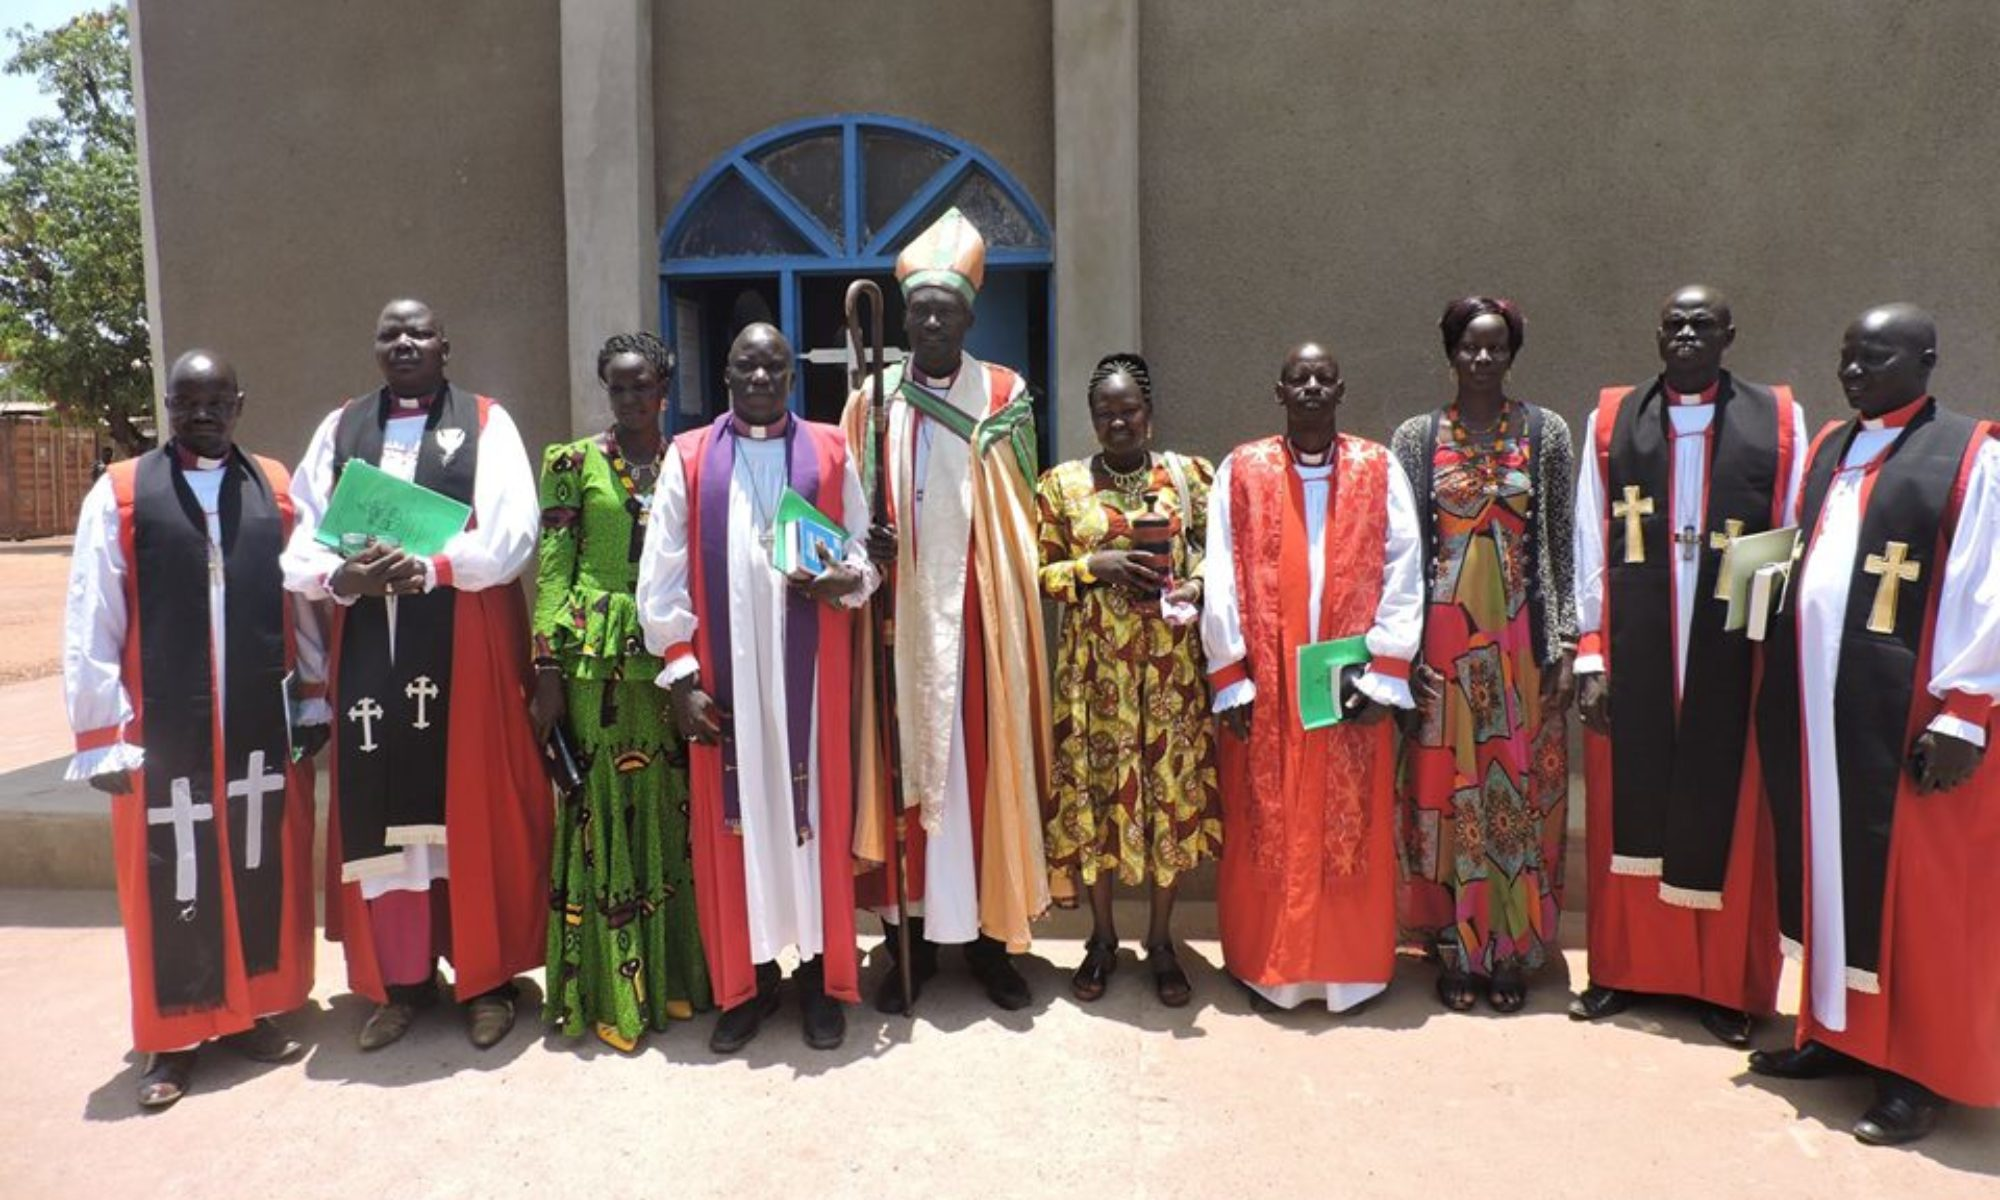 Diocese of Abyei